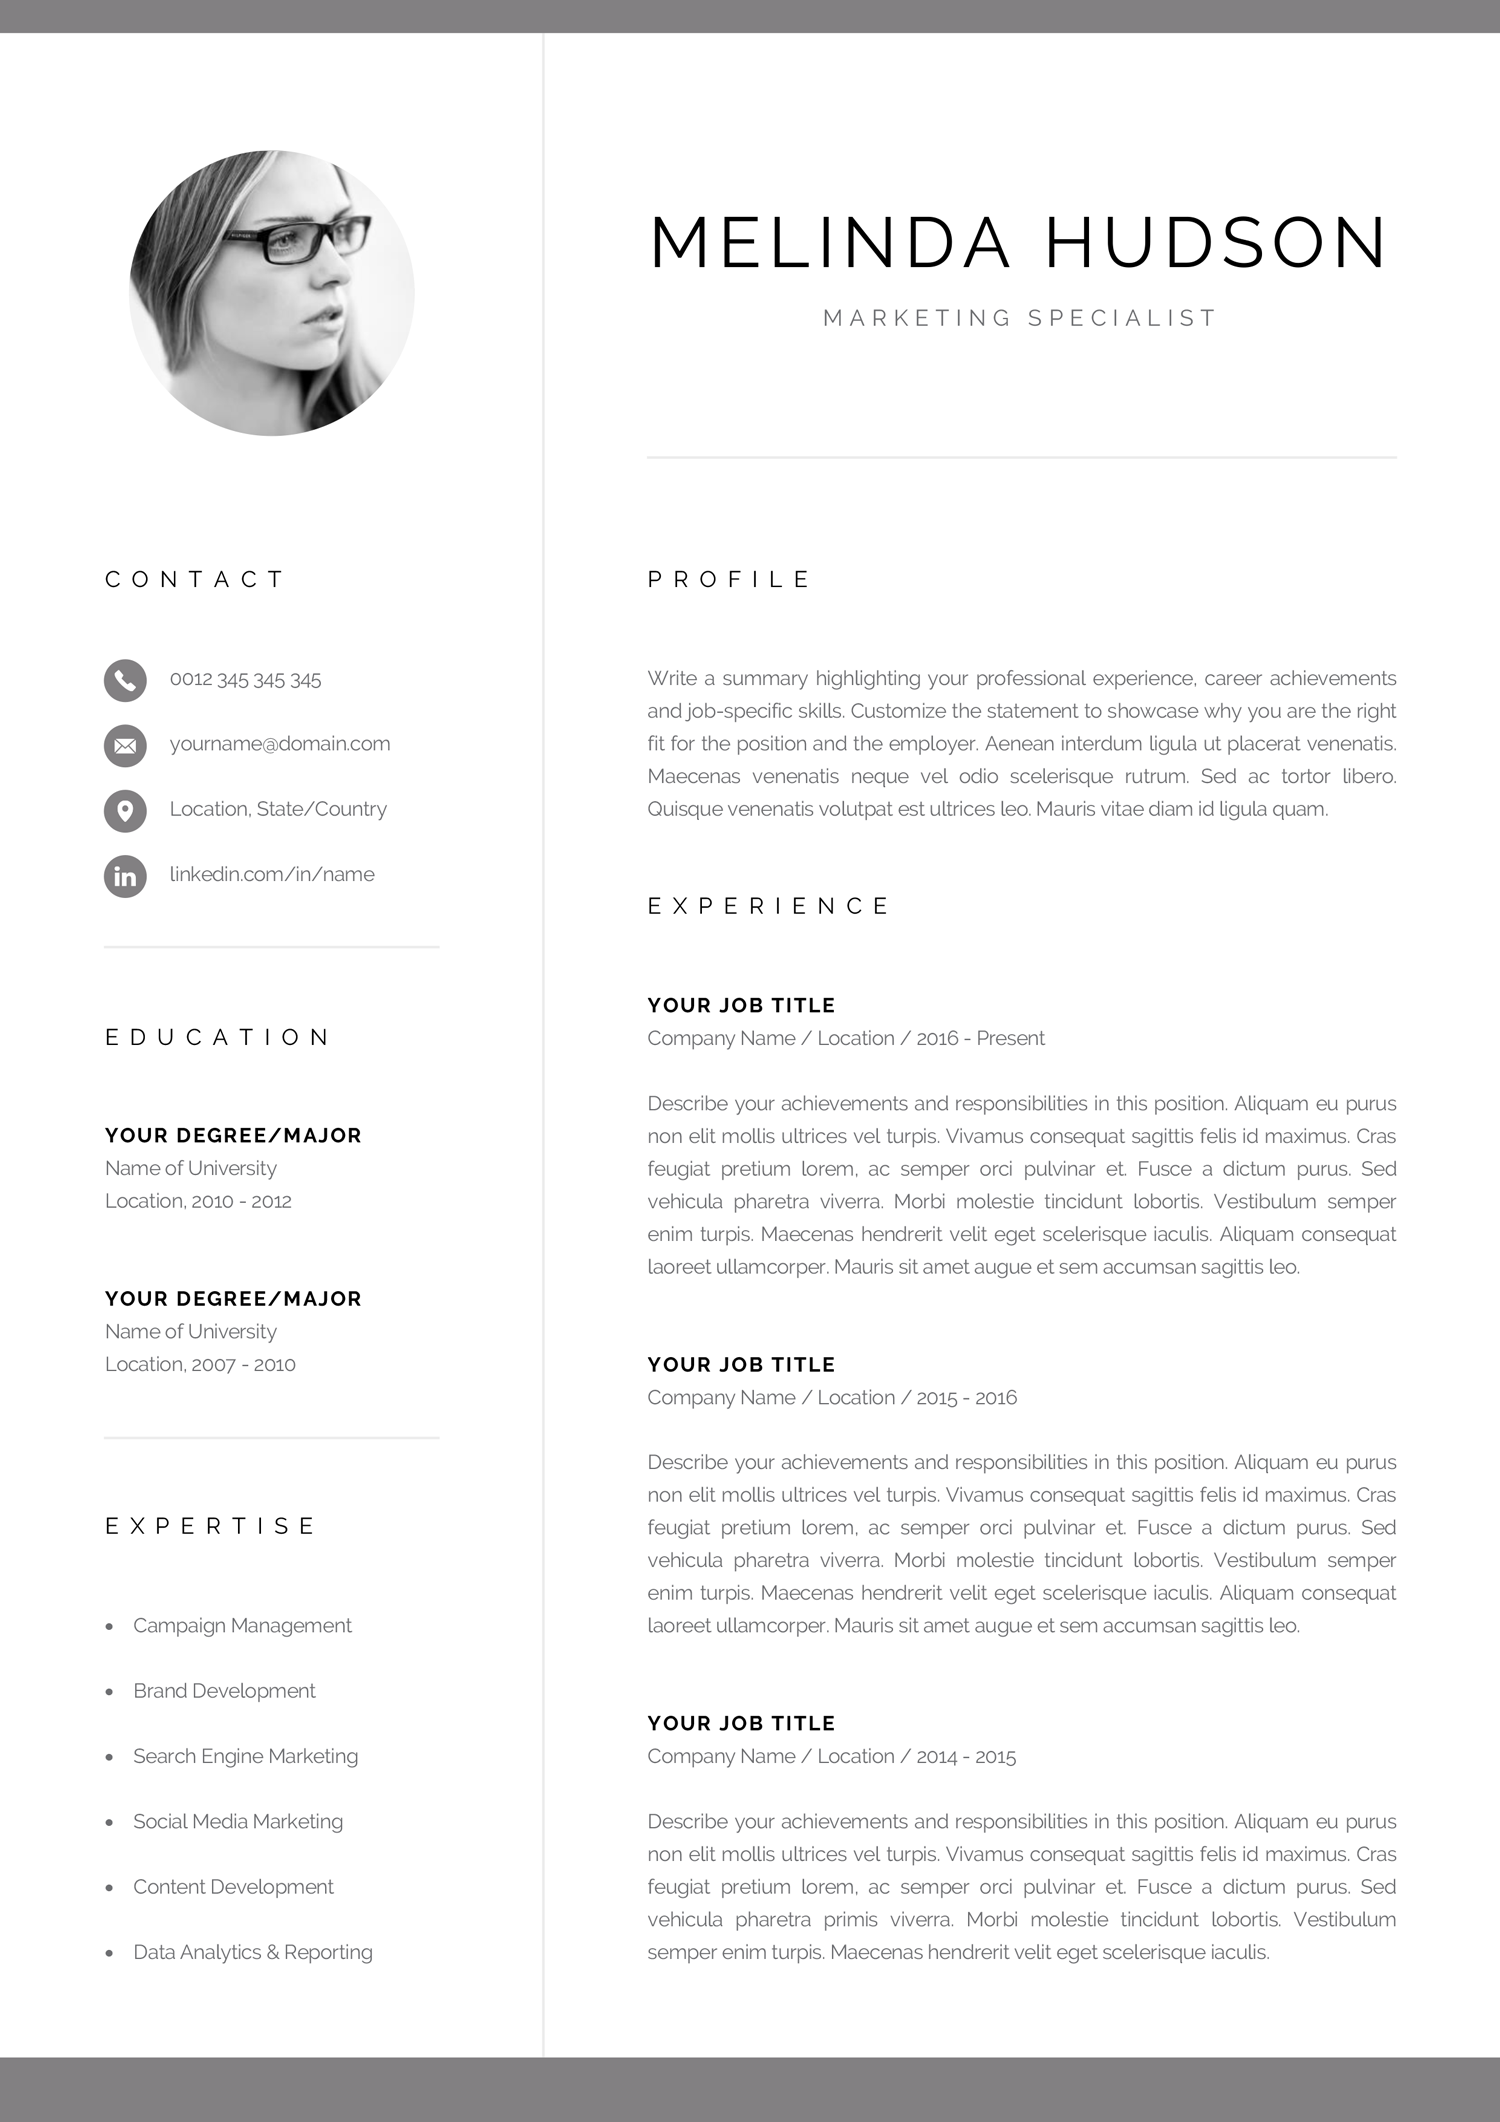 Cv Template With Photo Professional Resume Template For Word Etsy In 2021 Resume Template Professional Resume Template Cv Template